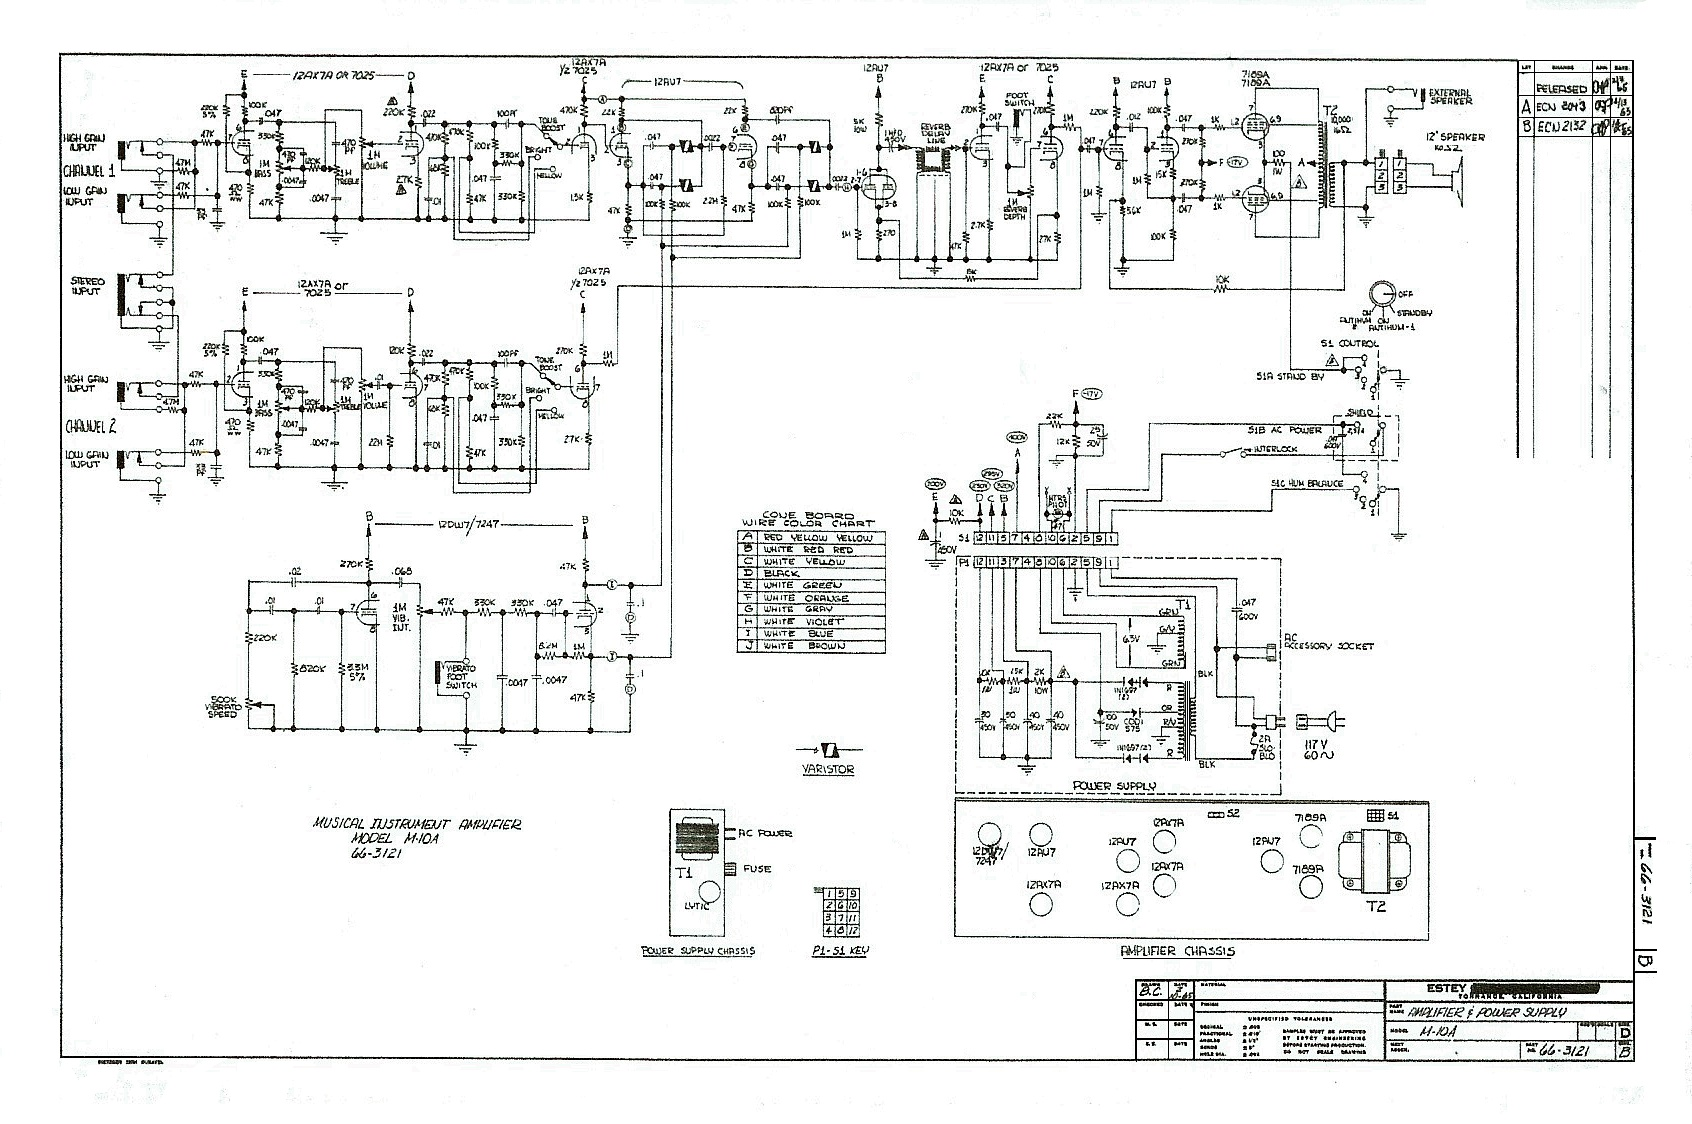 MagnatoneAmps.com Schematics on diagramming software, tube map, straight-line diagram, cross section, one-line diagram, block diagram, technical drawing, control flow diagram, data flow diagram, functional flow block diagram, function block diagram, schematic capture, piping and instrumentation diagram, ladder logic, electronic design automation, circuit diagram,